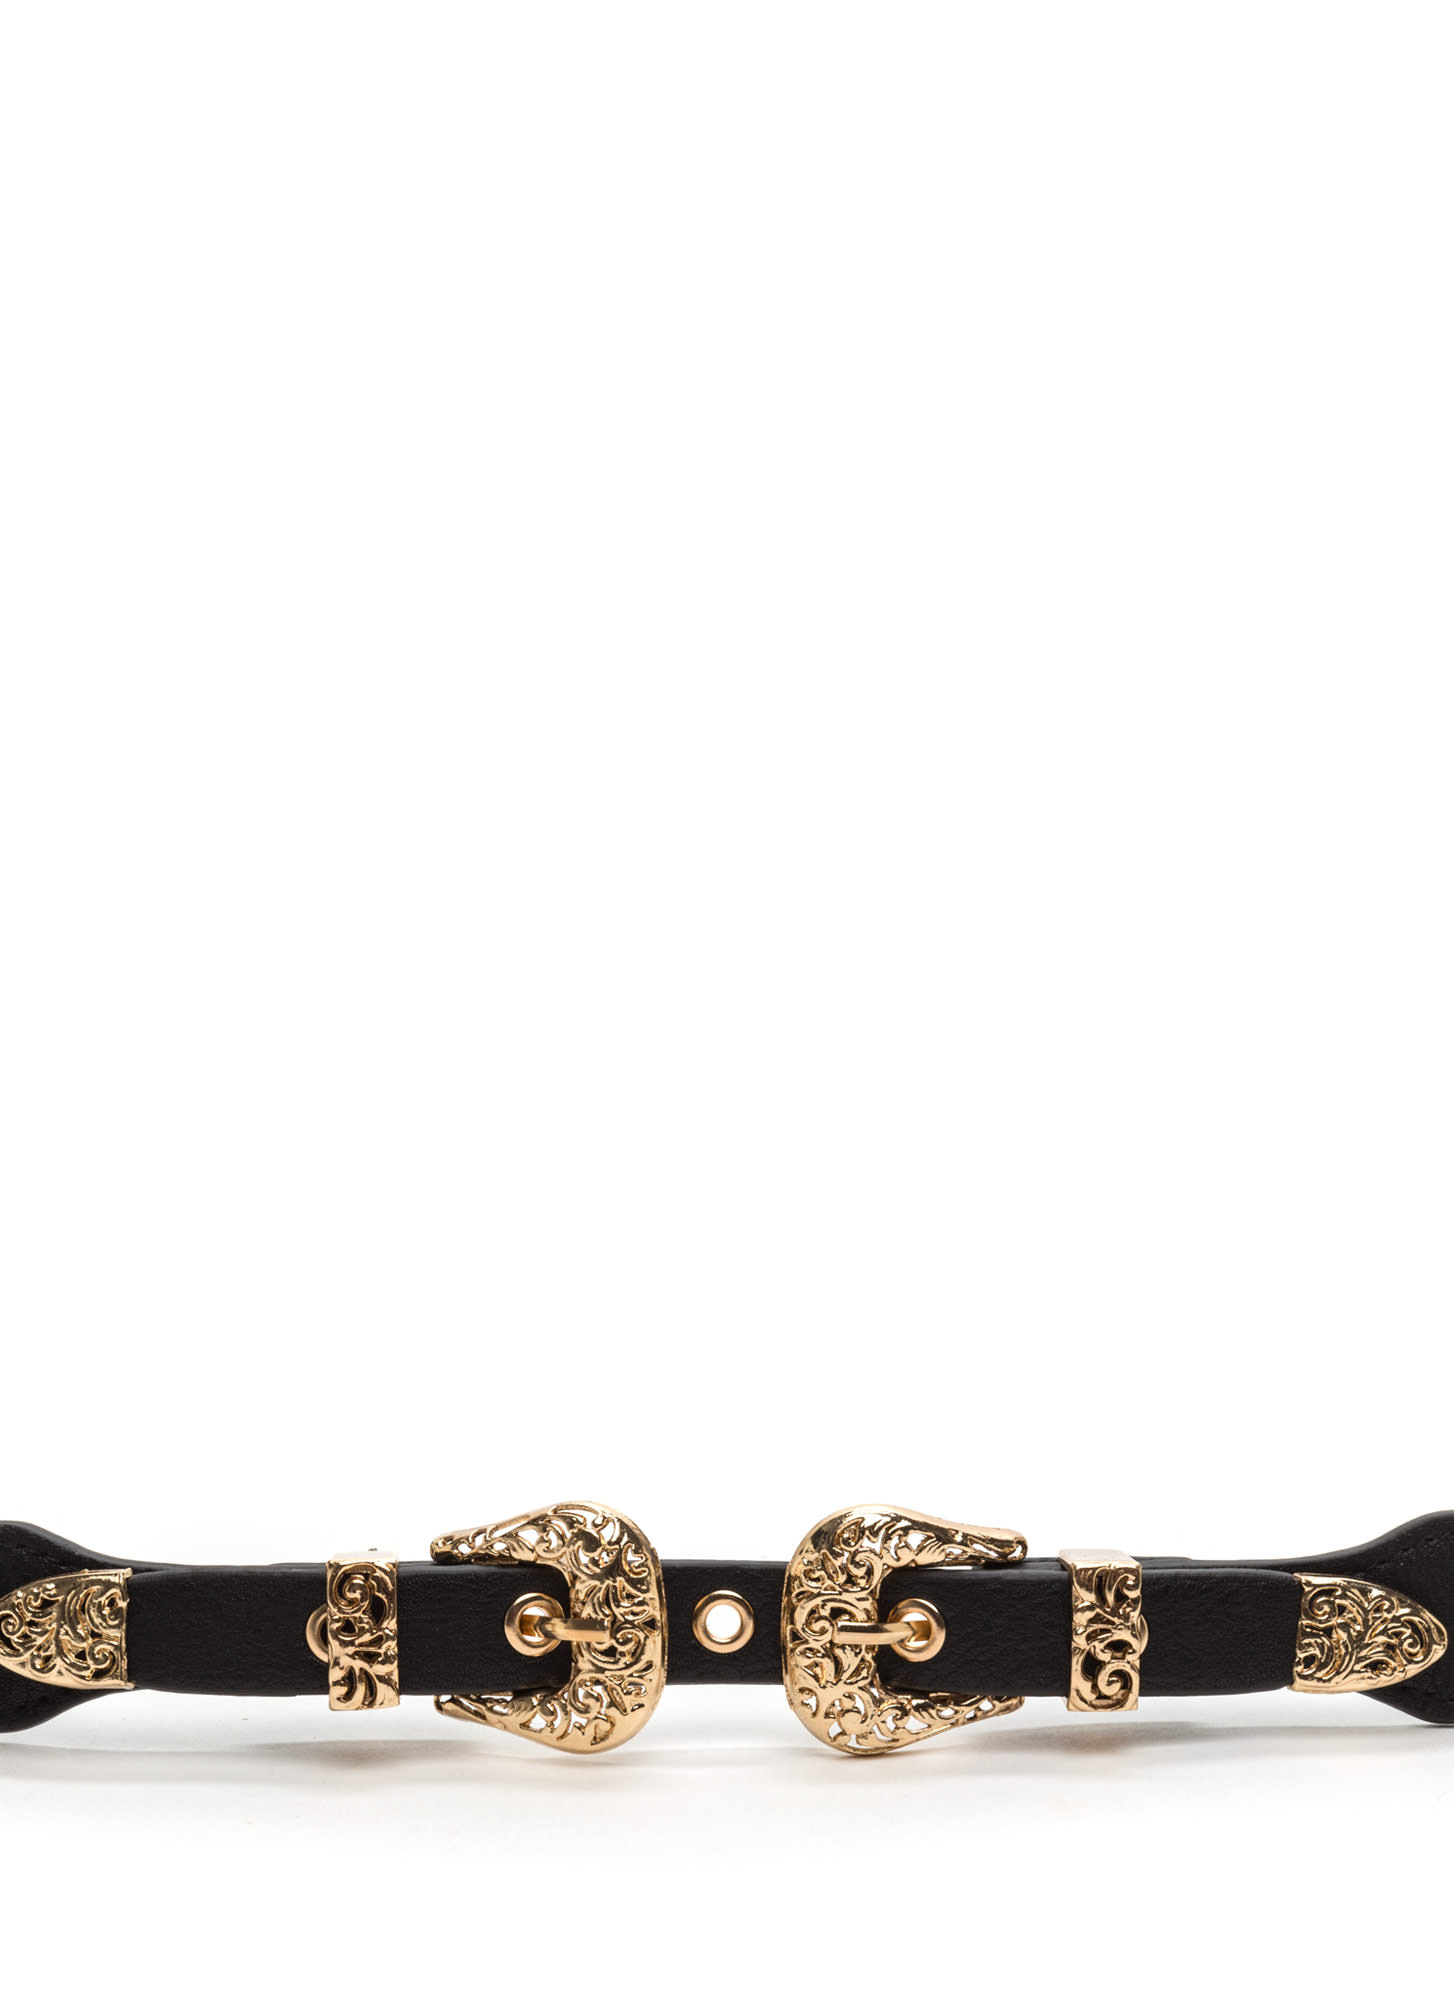 Style Bandit Stretchy Double Buckle Belt BLACKGOLD